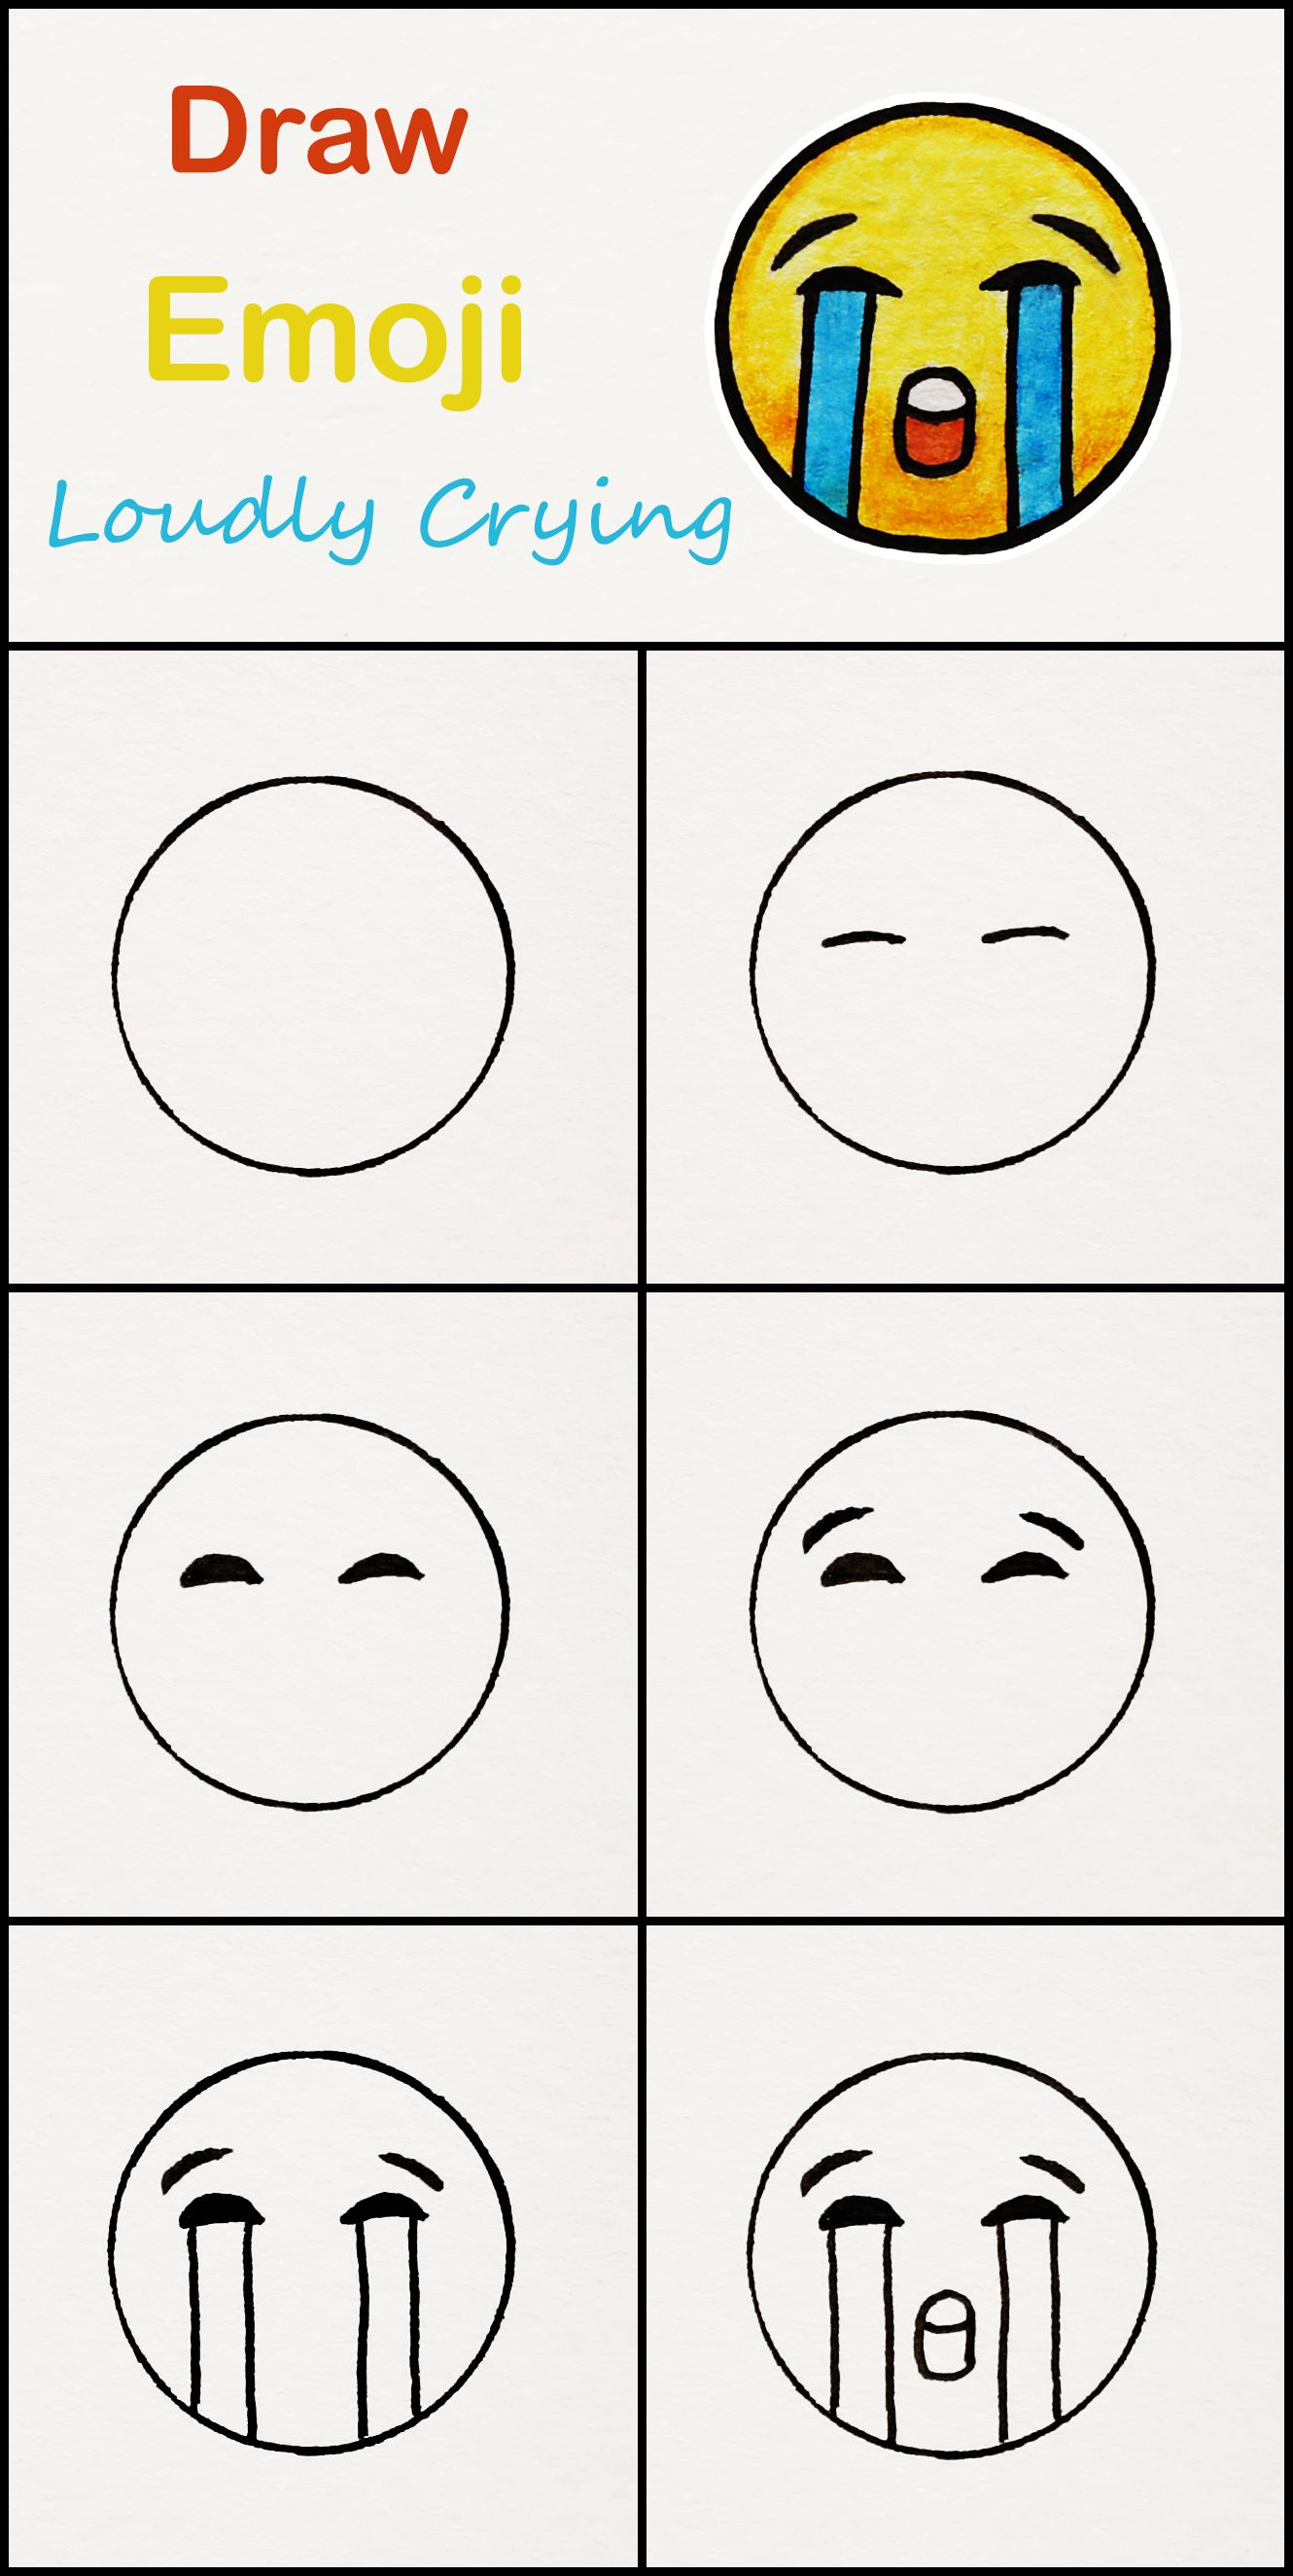 Learn How To Draw The Loudly Crying Emoji Step By Step Very Simple Tutorial Face Drawings Emoji Tutor Easy Drawings Easy Doodle Art Drawing Tutorial Easy